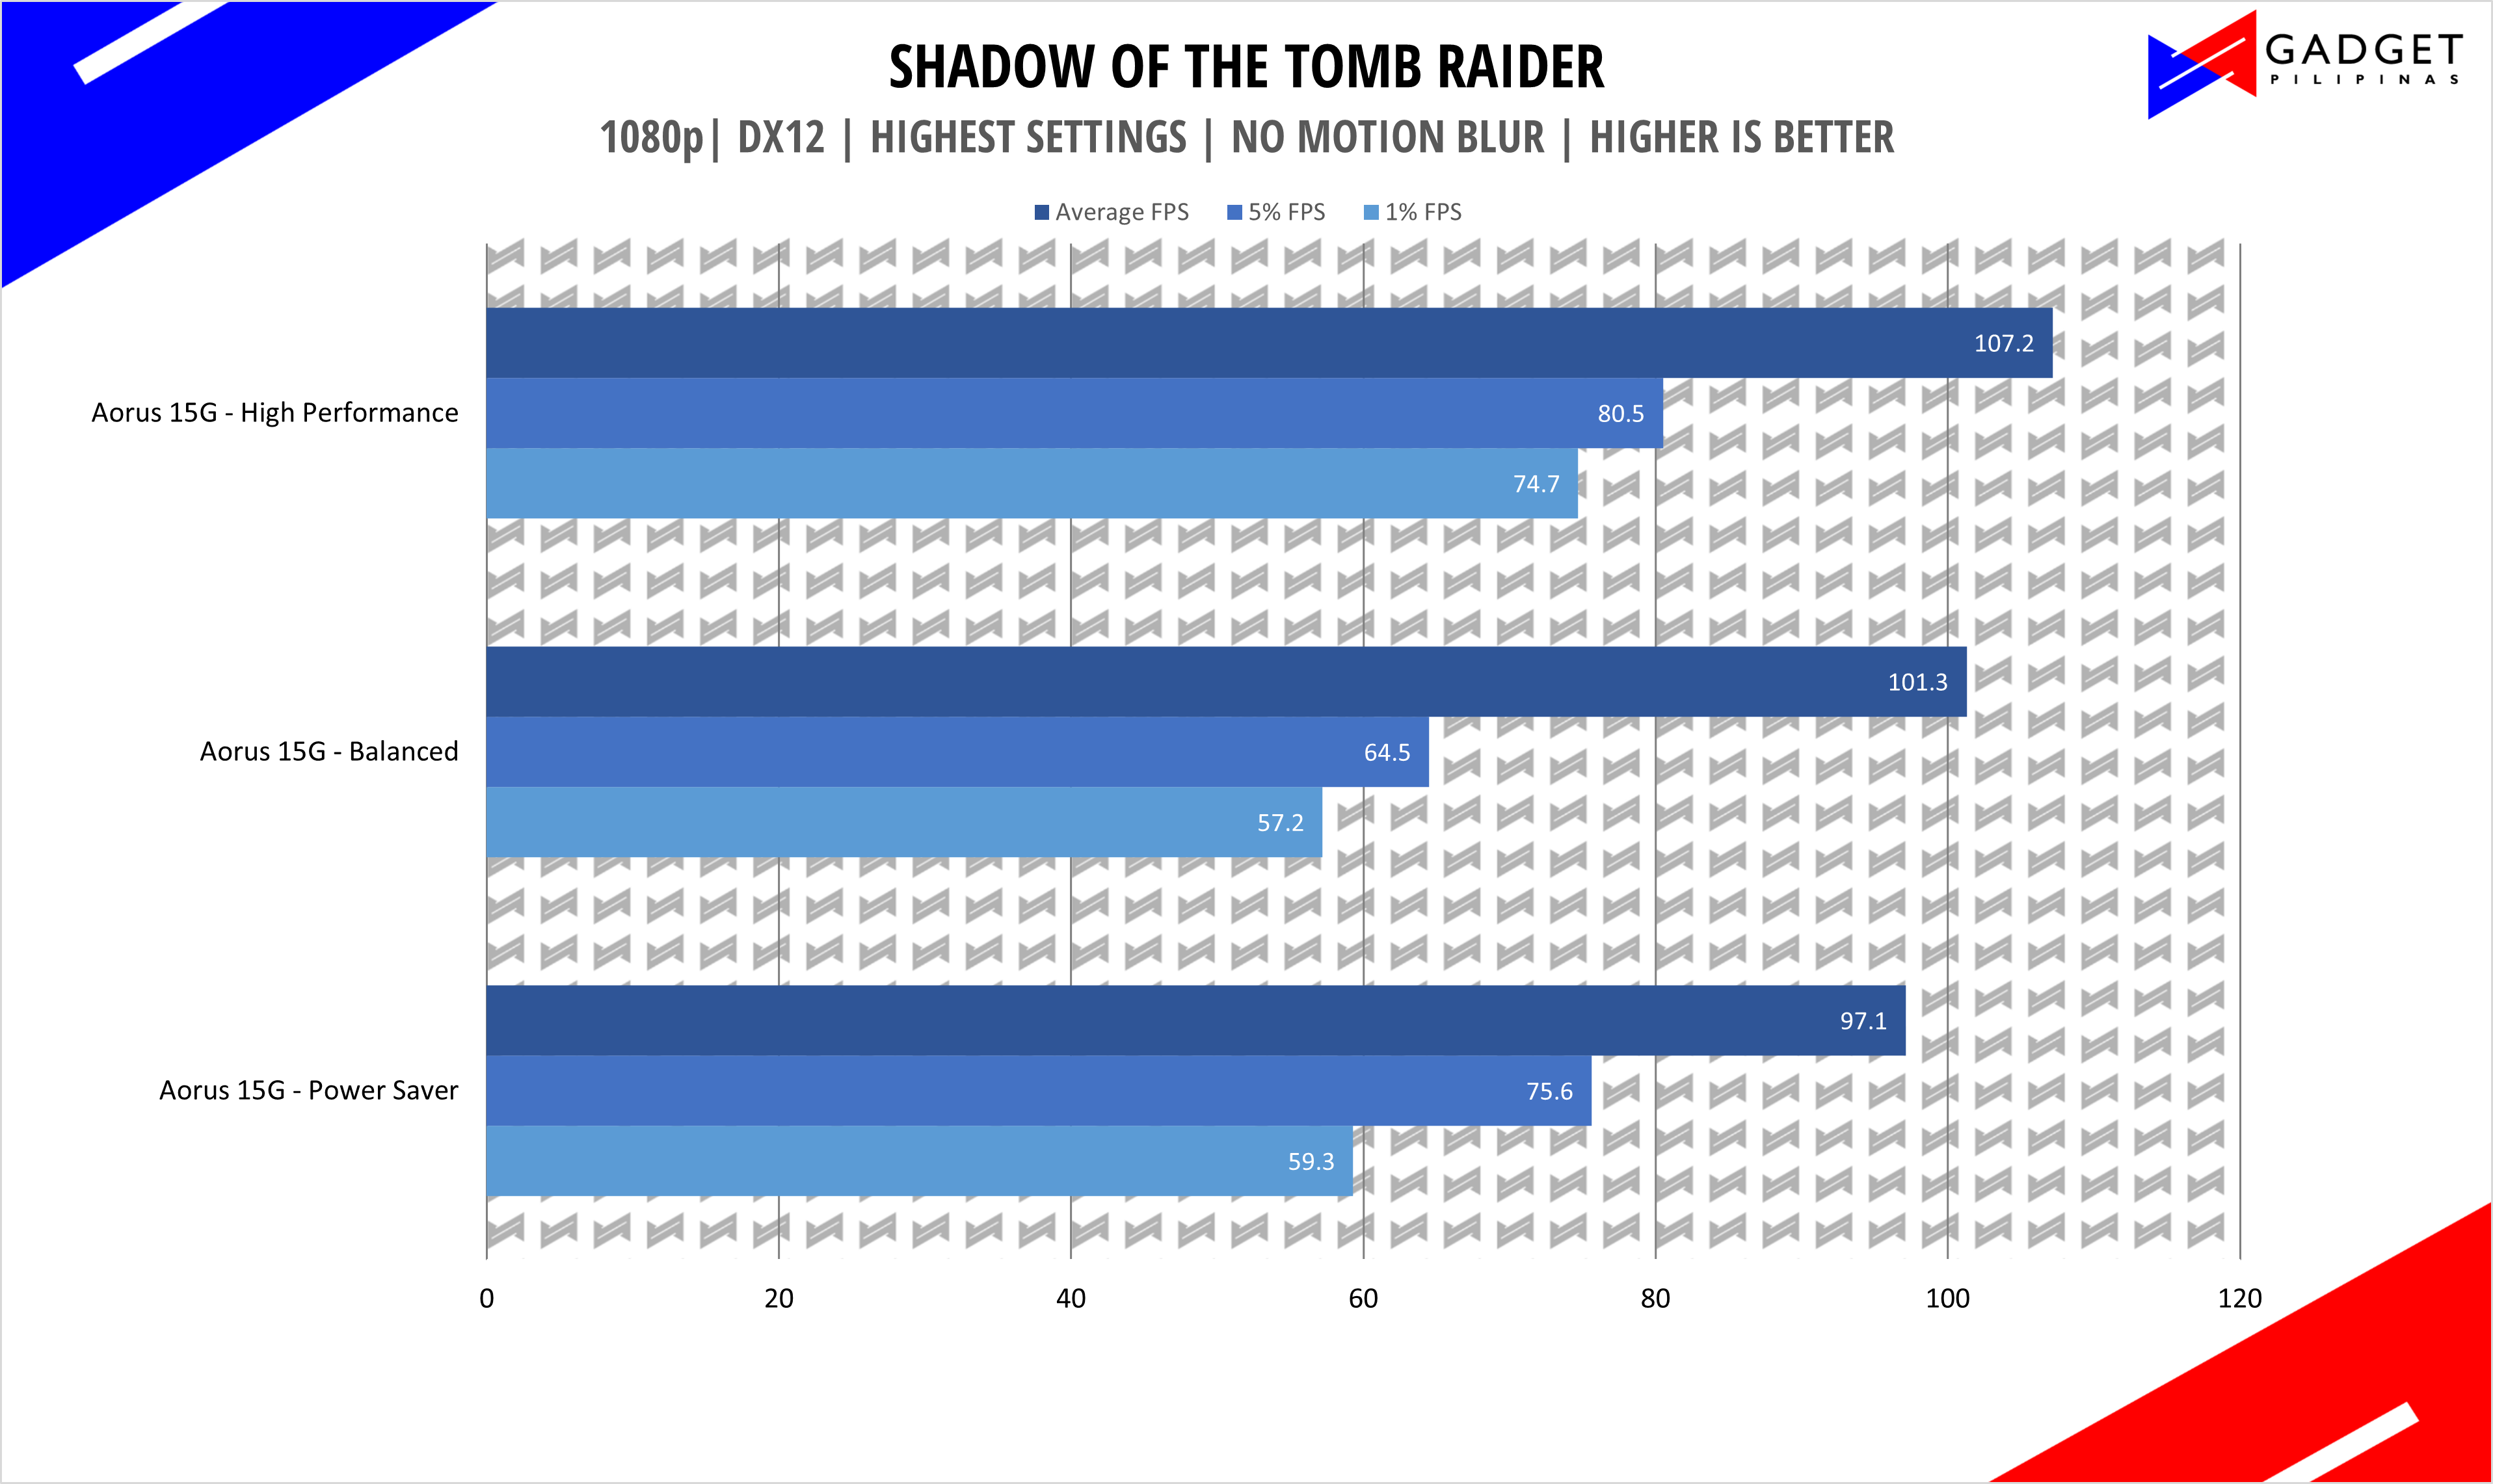 Aorus 15G XC Review - Shadow of The Tomb Raider Benchmark